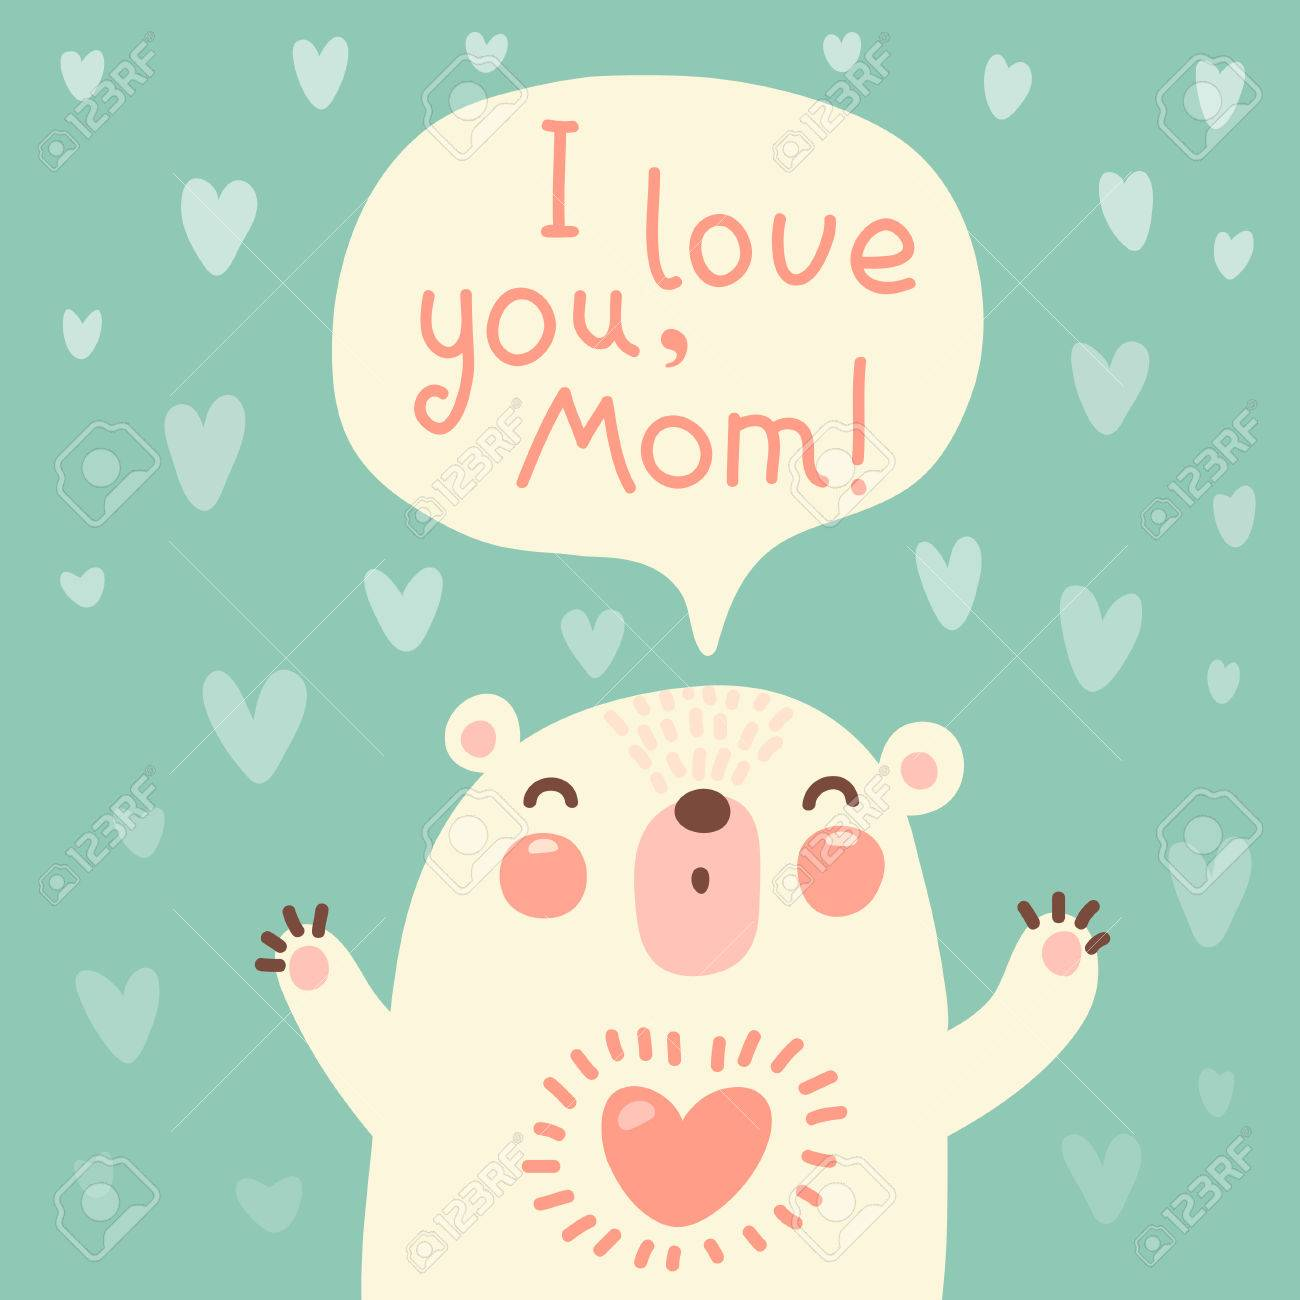 Greeting Card For Mom With Cute Bear Vector Illustration Royalty